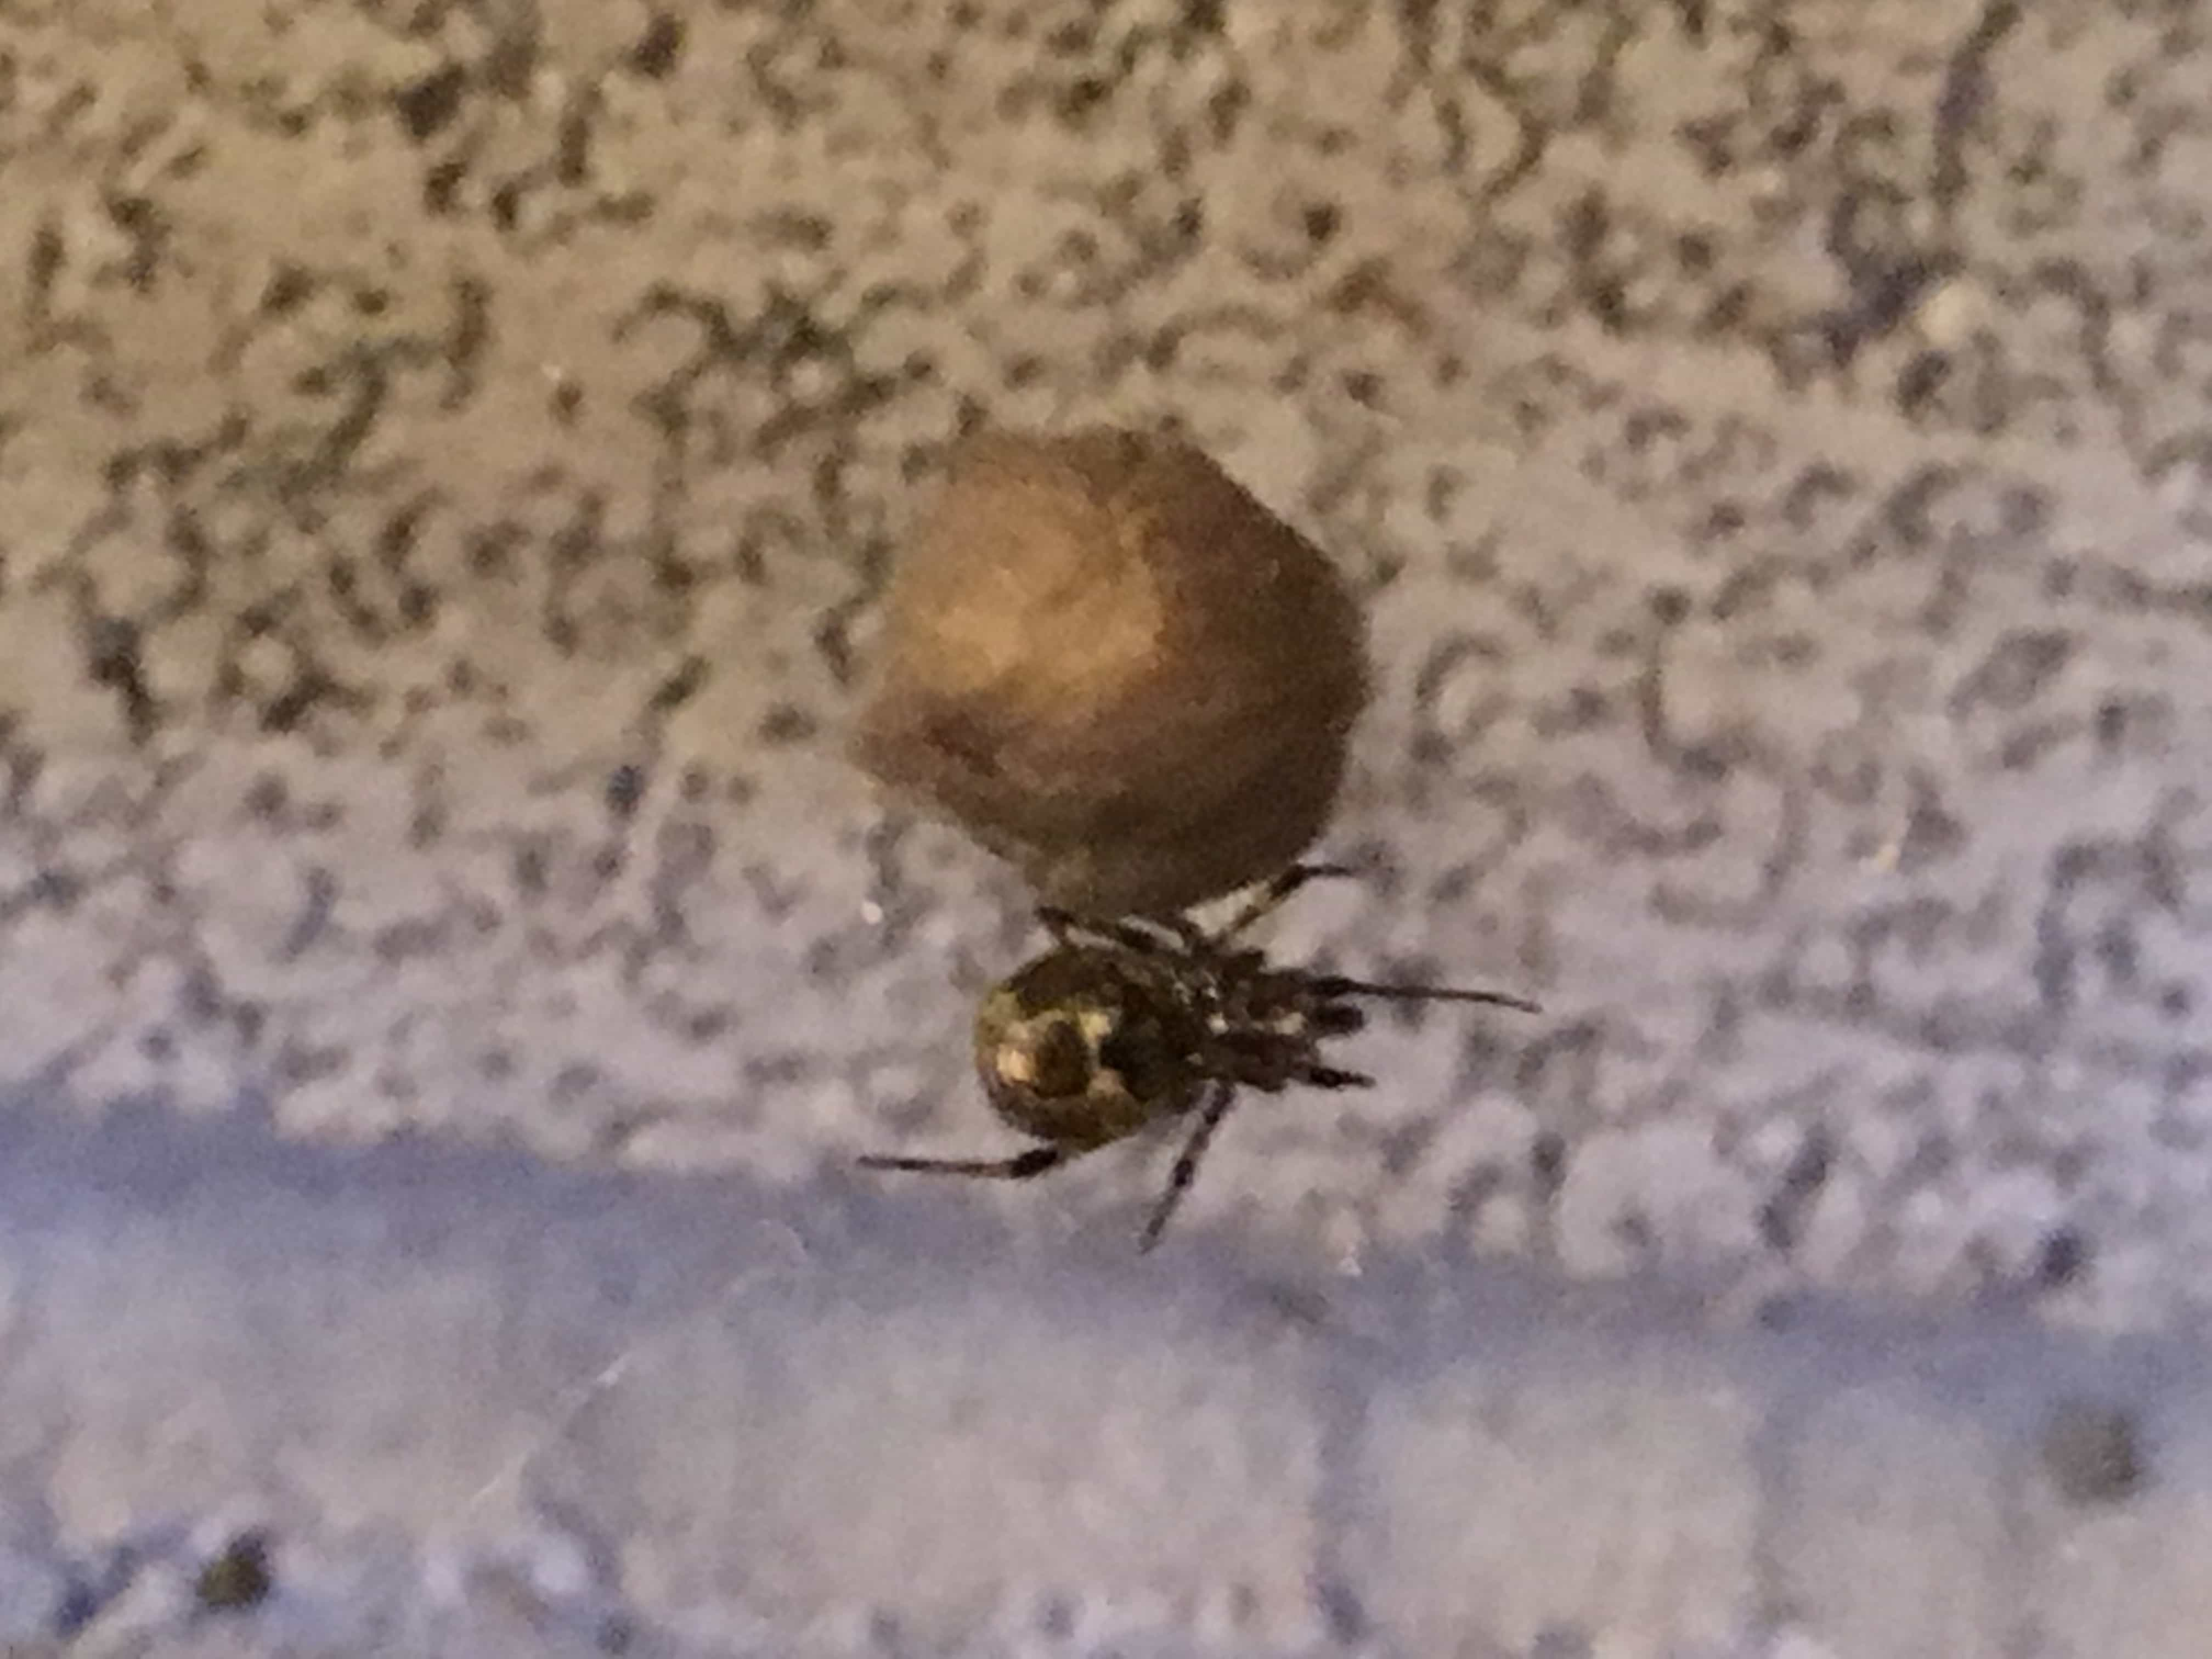 Picture of Parasteatoda - Egg sacs,Ventral